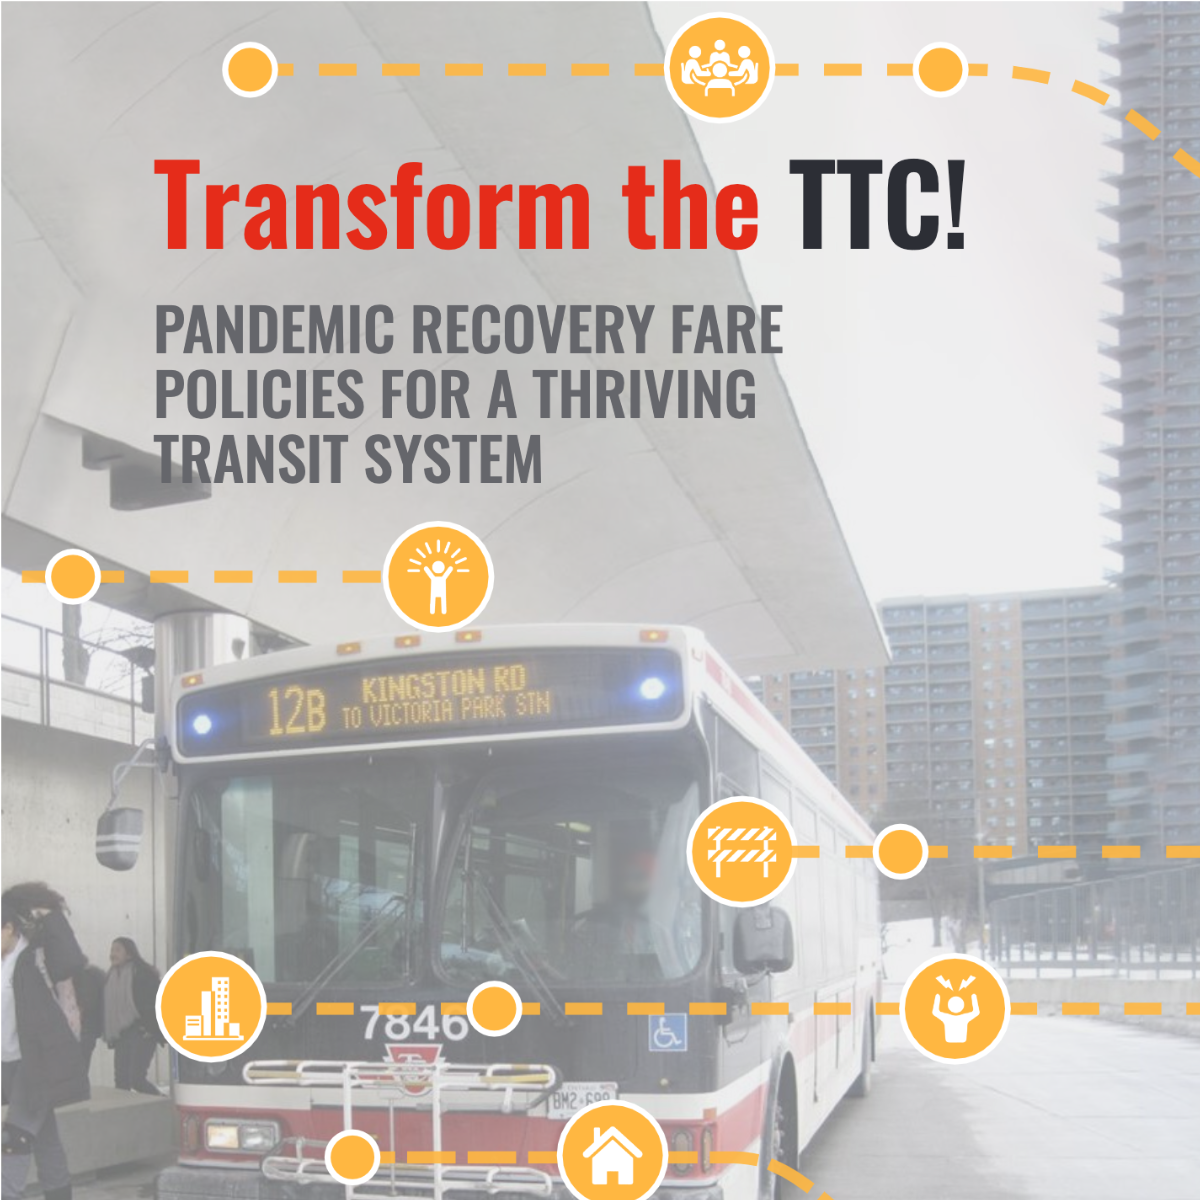 Transform the TTC! Pandemic recovery fare policies for a thriving transit system